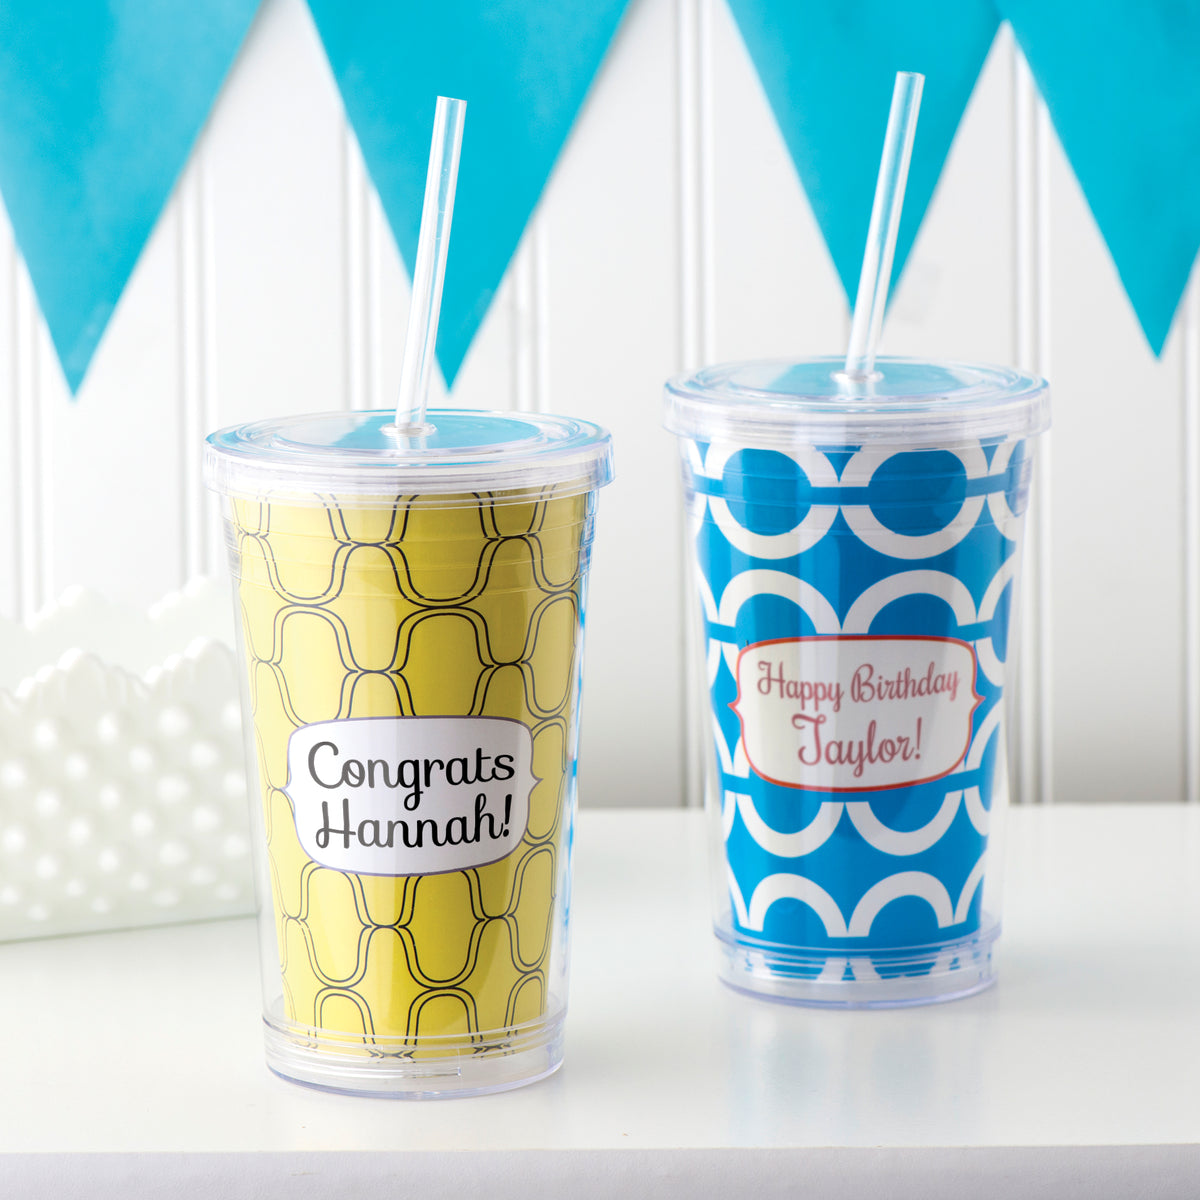 Belle of the Ball Personalized Tumbler